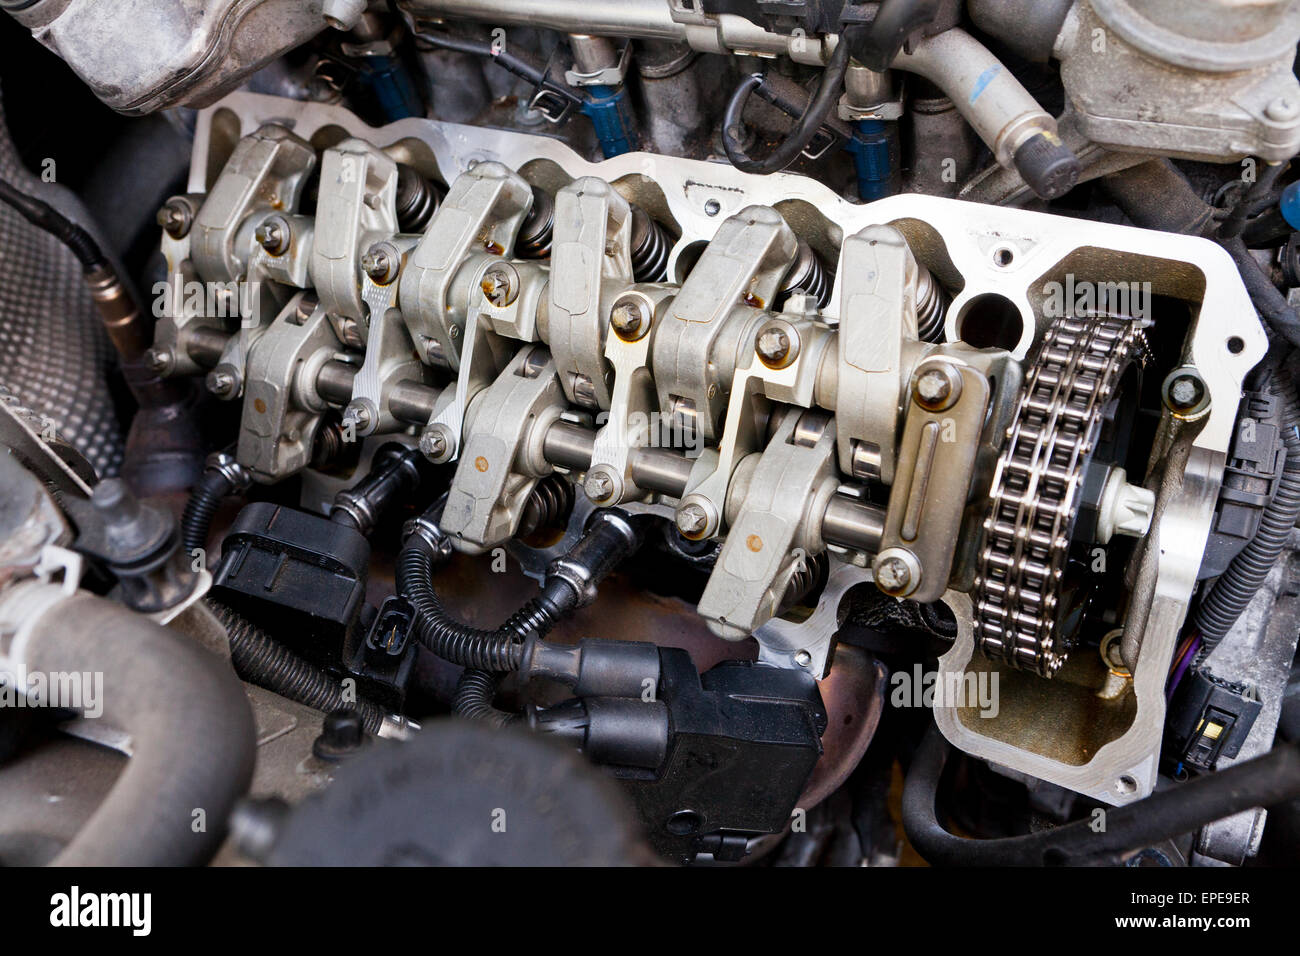 Timing Chain Stock Photos Images Alamy Mercedes Benz Engine With Valve Cover Removed Image